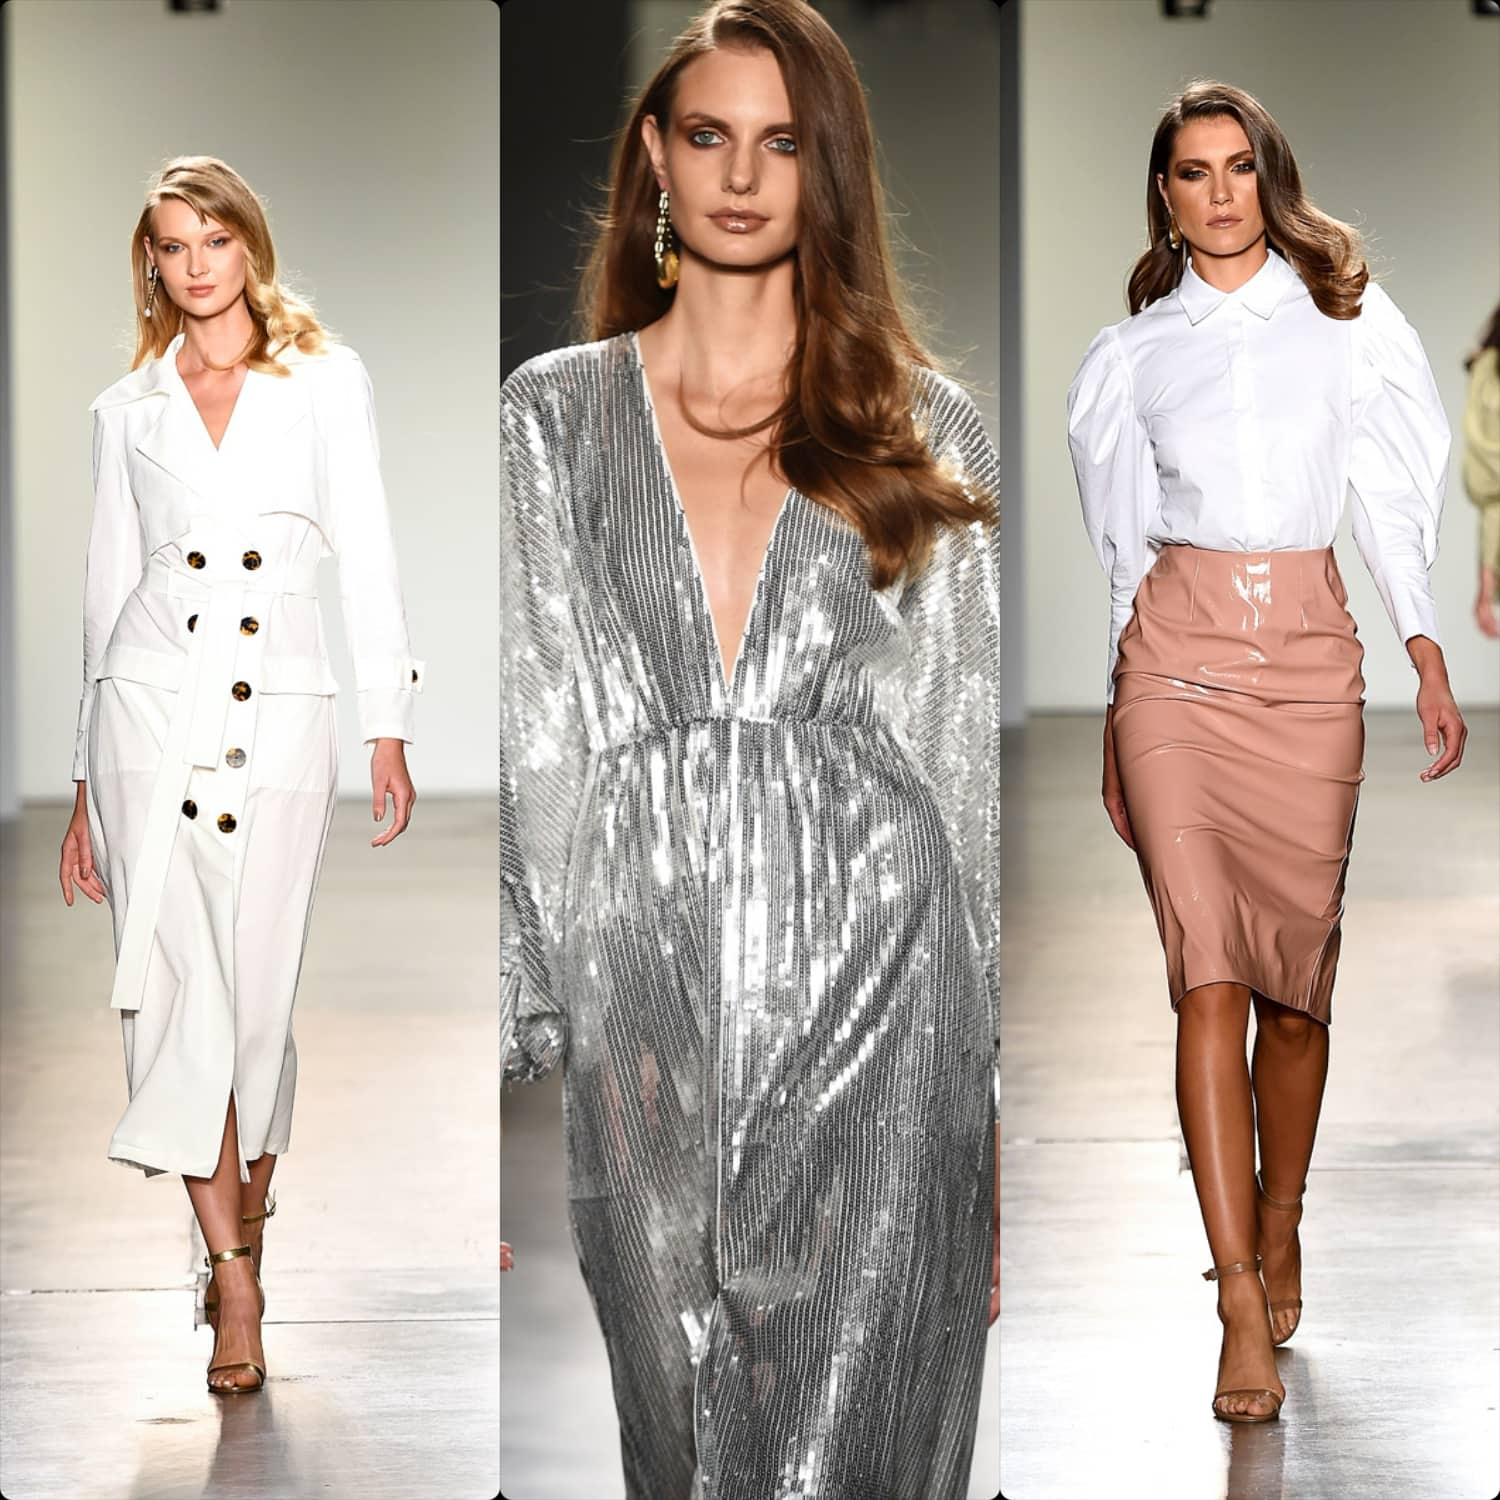 Fashion Palette Spring Summer 2020 New York. Torannce. RUNWAY MAGAZINE ® Collections. RUNWAY NOW / RUNWAY NEW